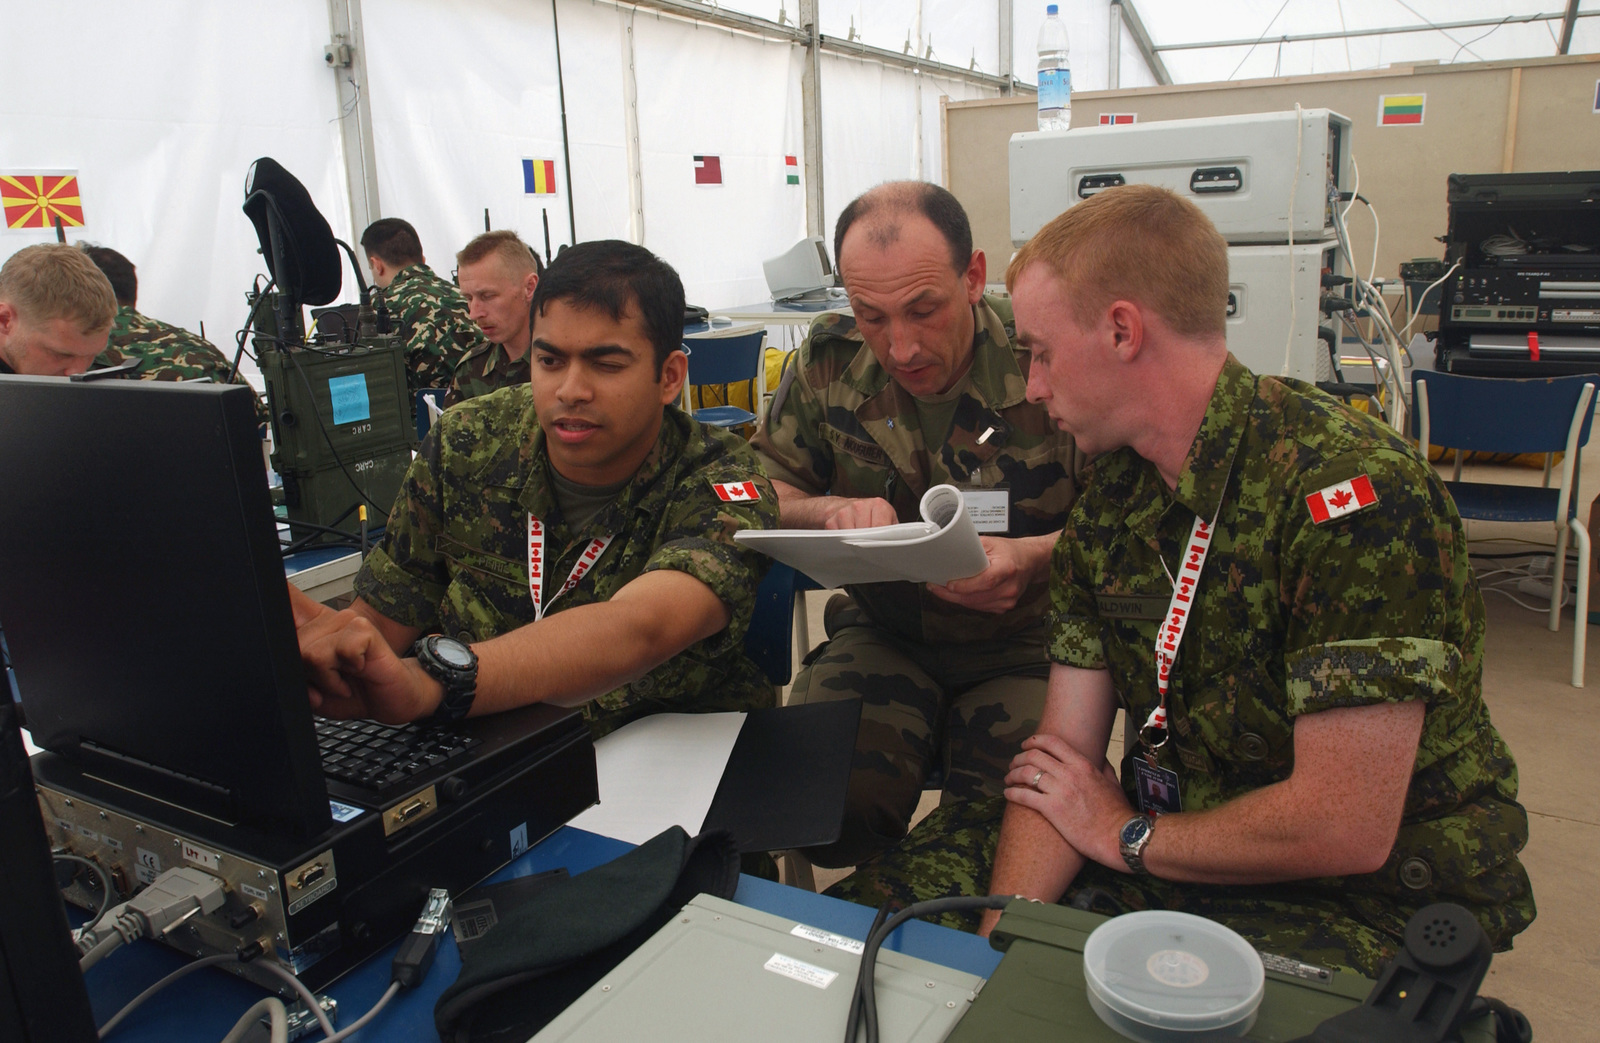 Multi-National Forces Soldiers work side-by-side configuring